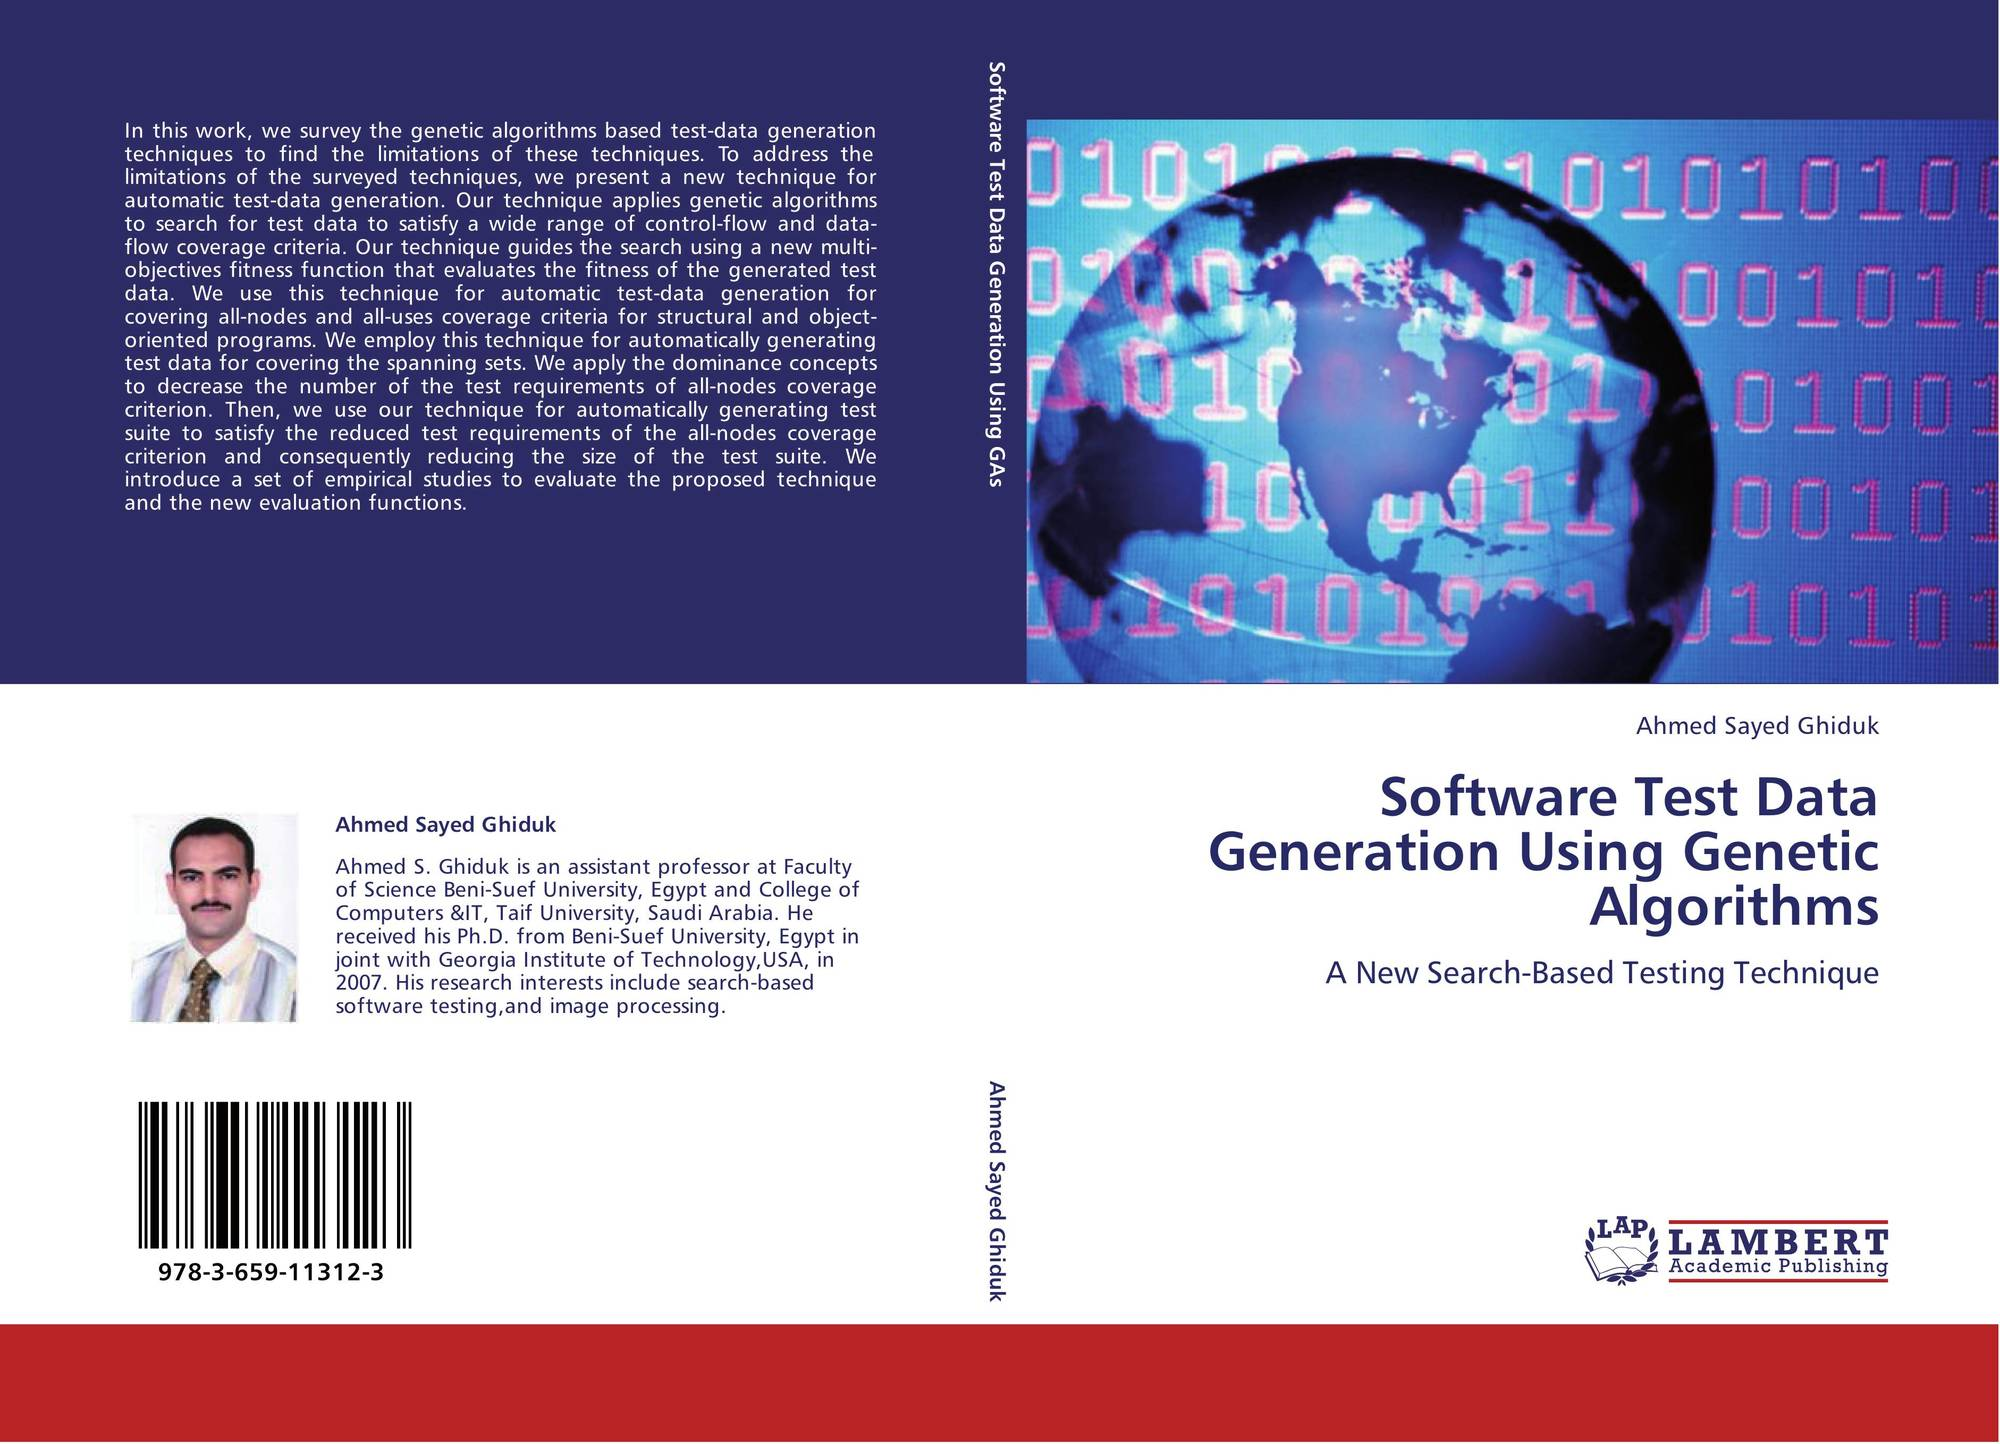 Software Test Data Generation Using Genetic Algorithms, 978